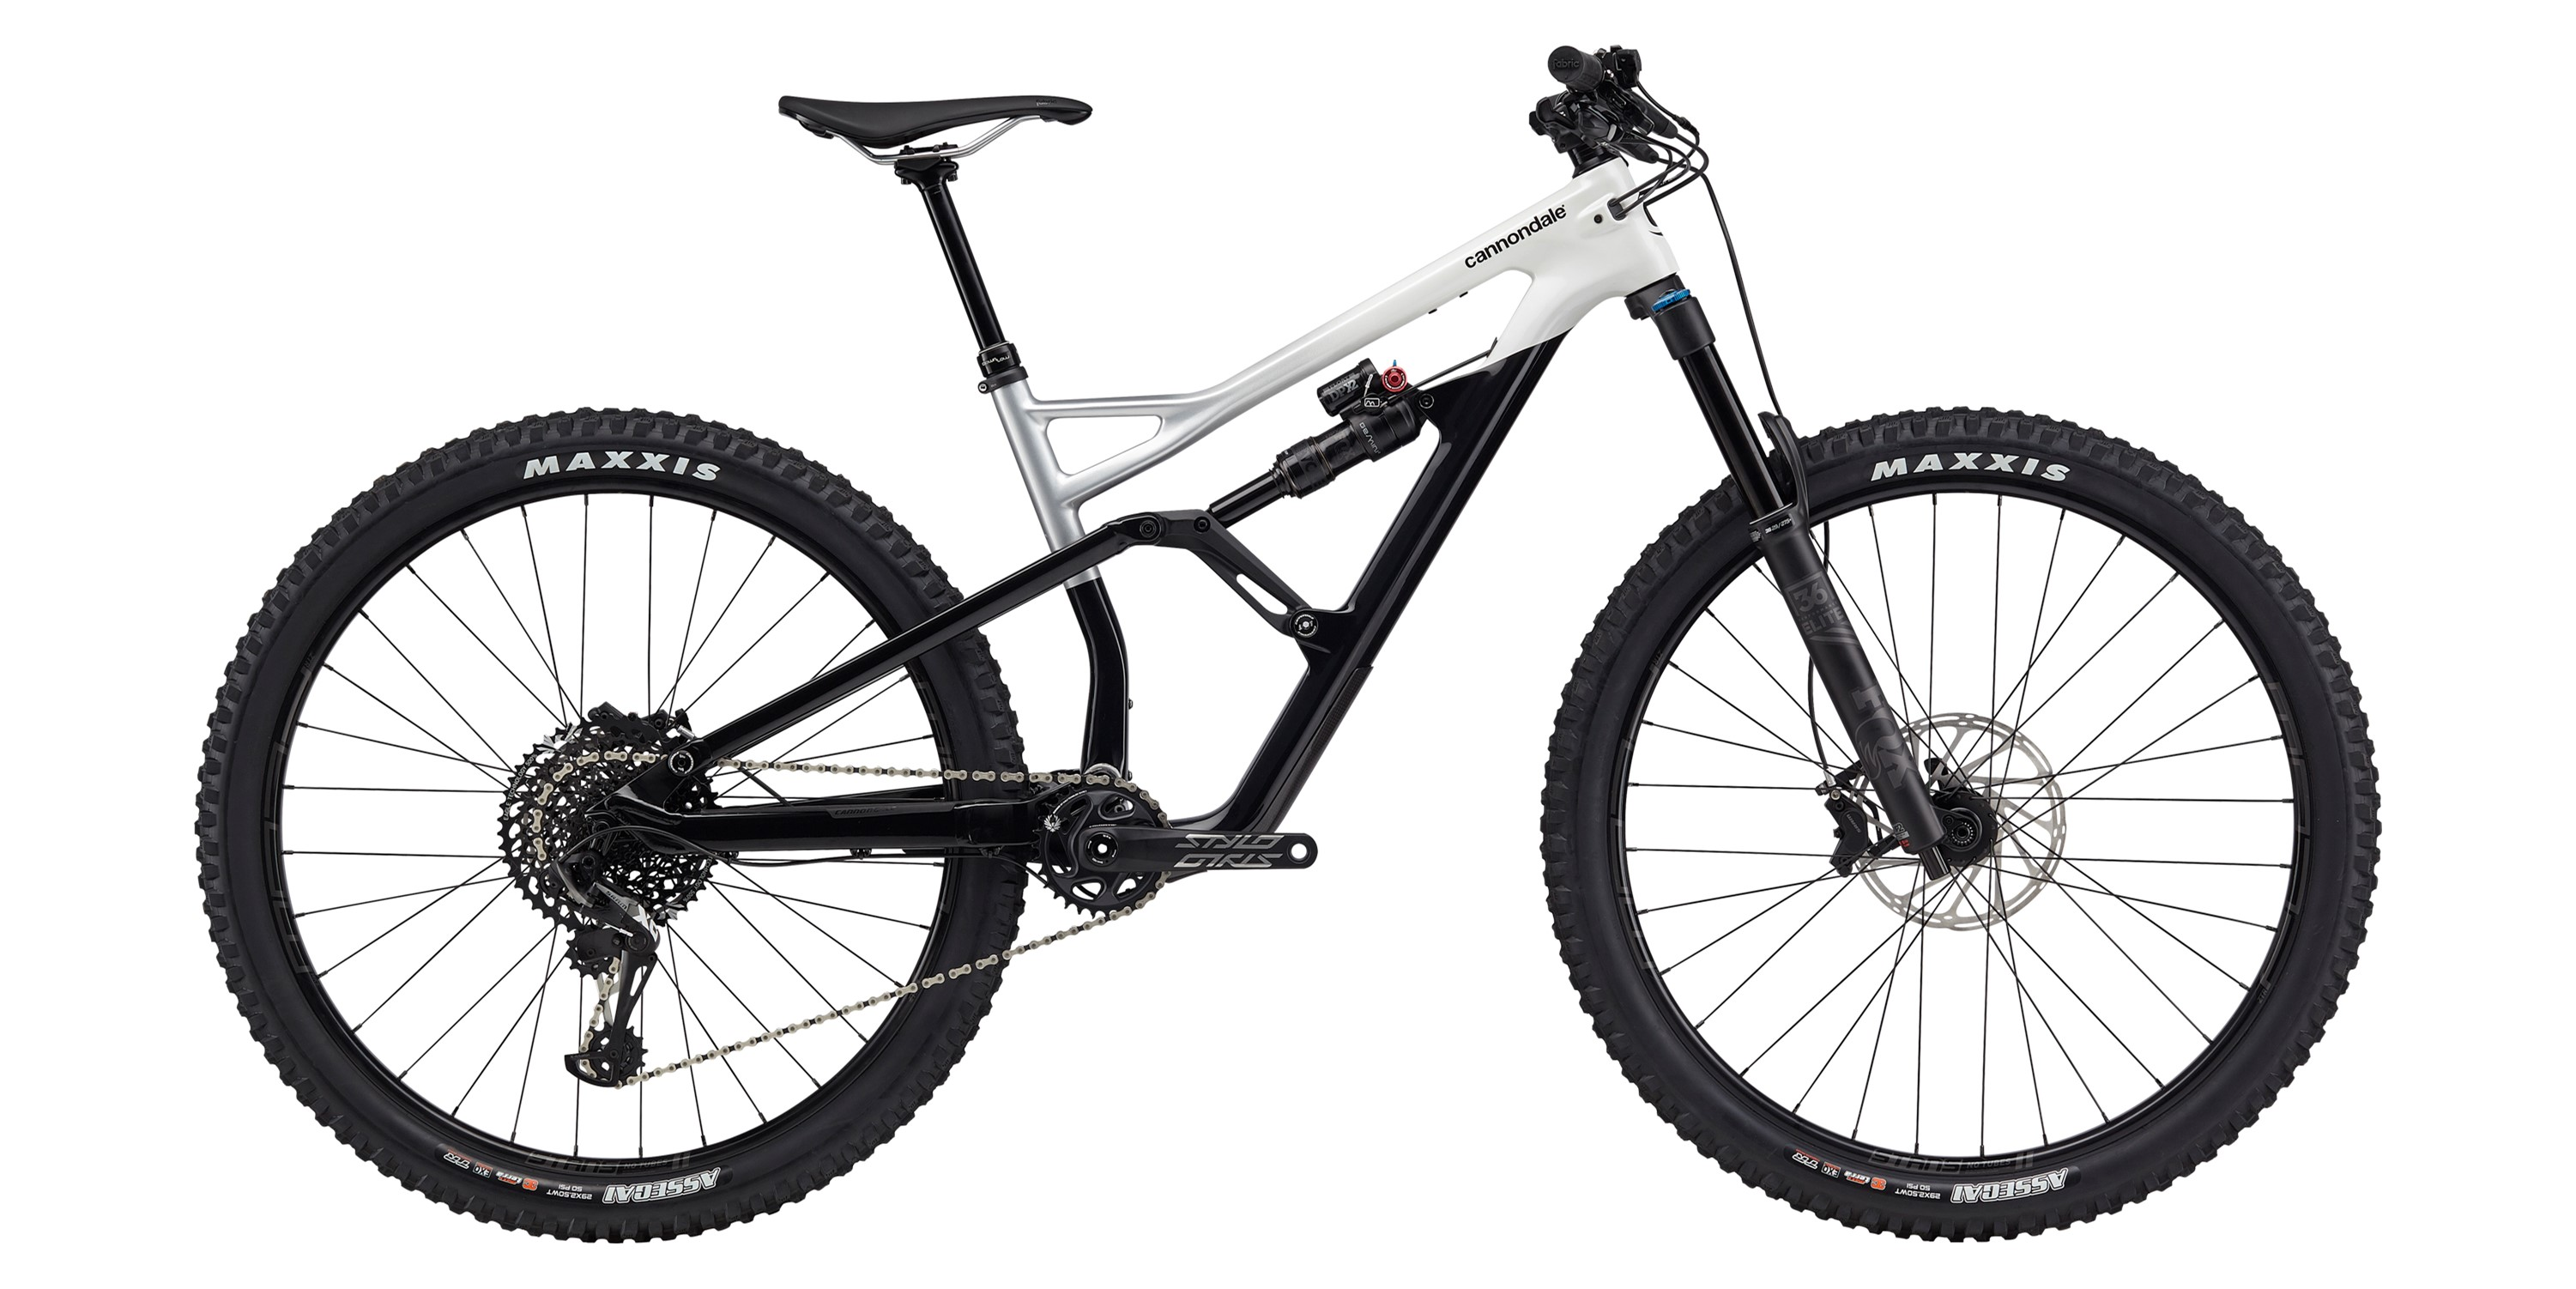 2020 Cannondale Jekyll 2 Carbon Full Suspension Mountain Bike in White | MTB